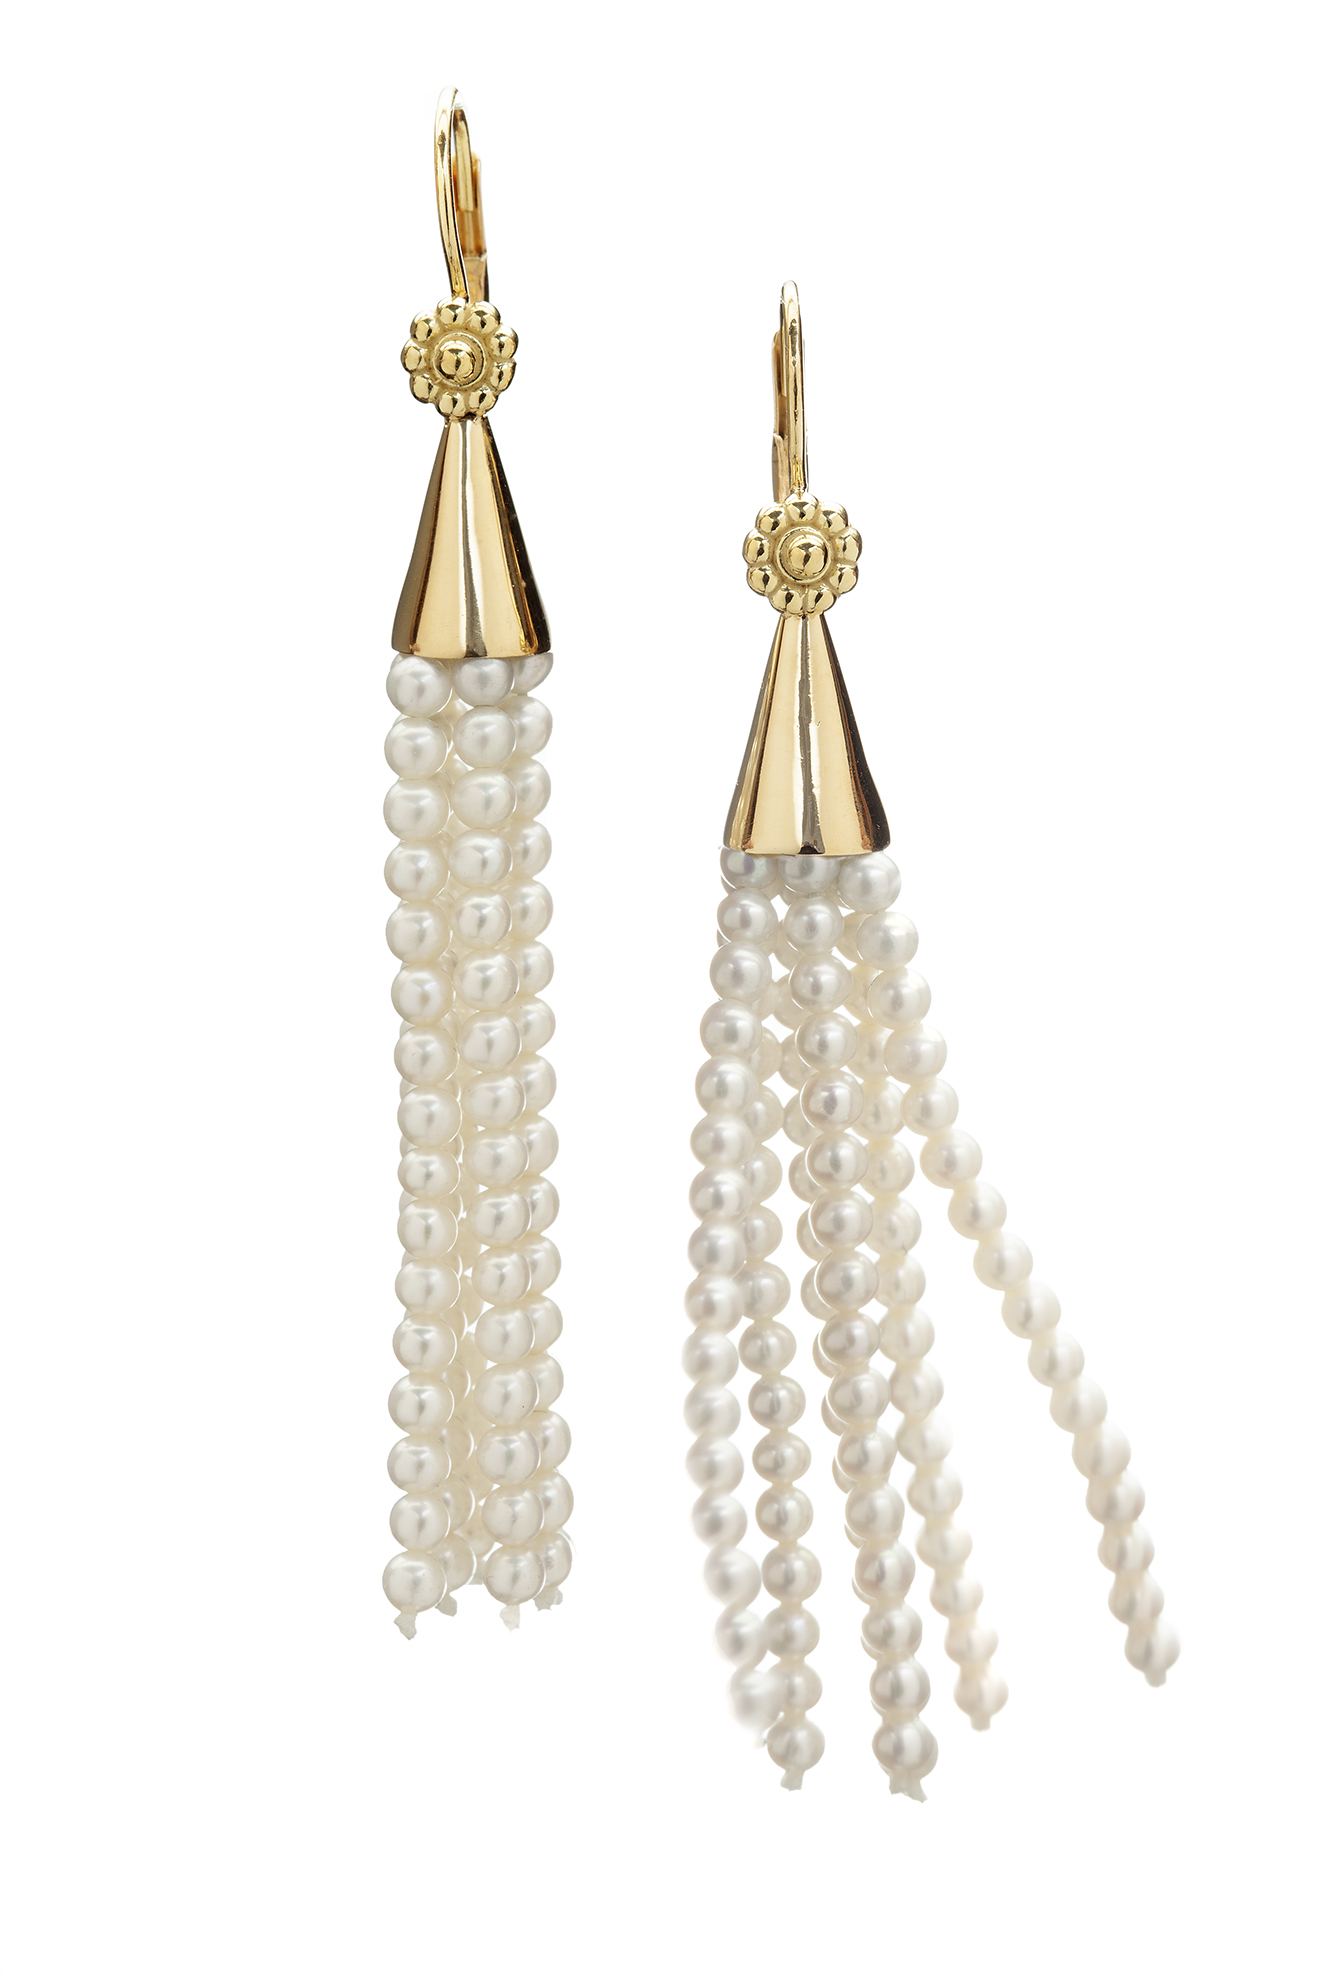 Christina Malle Ingres Tassel Earrings.jpg